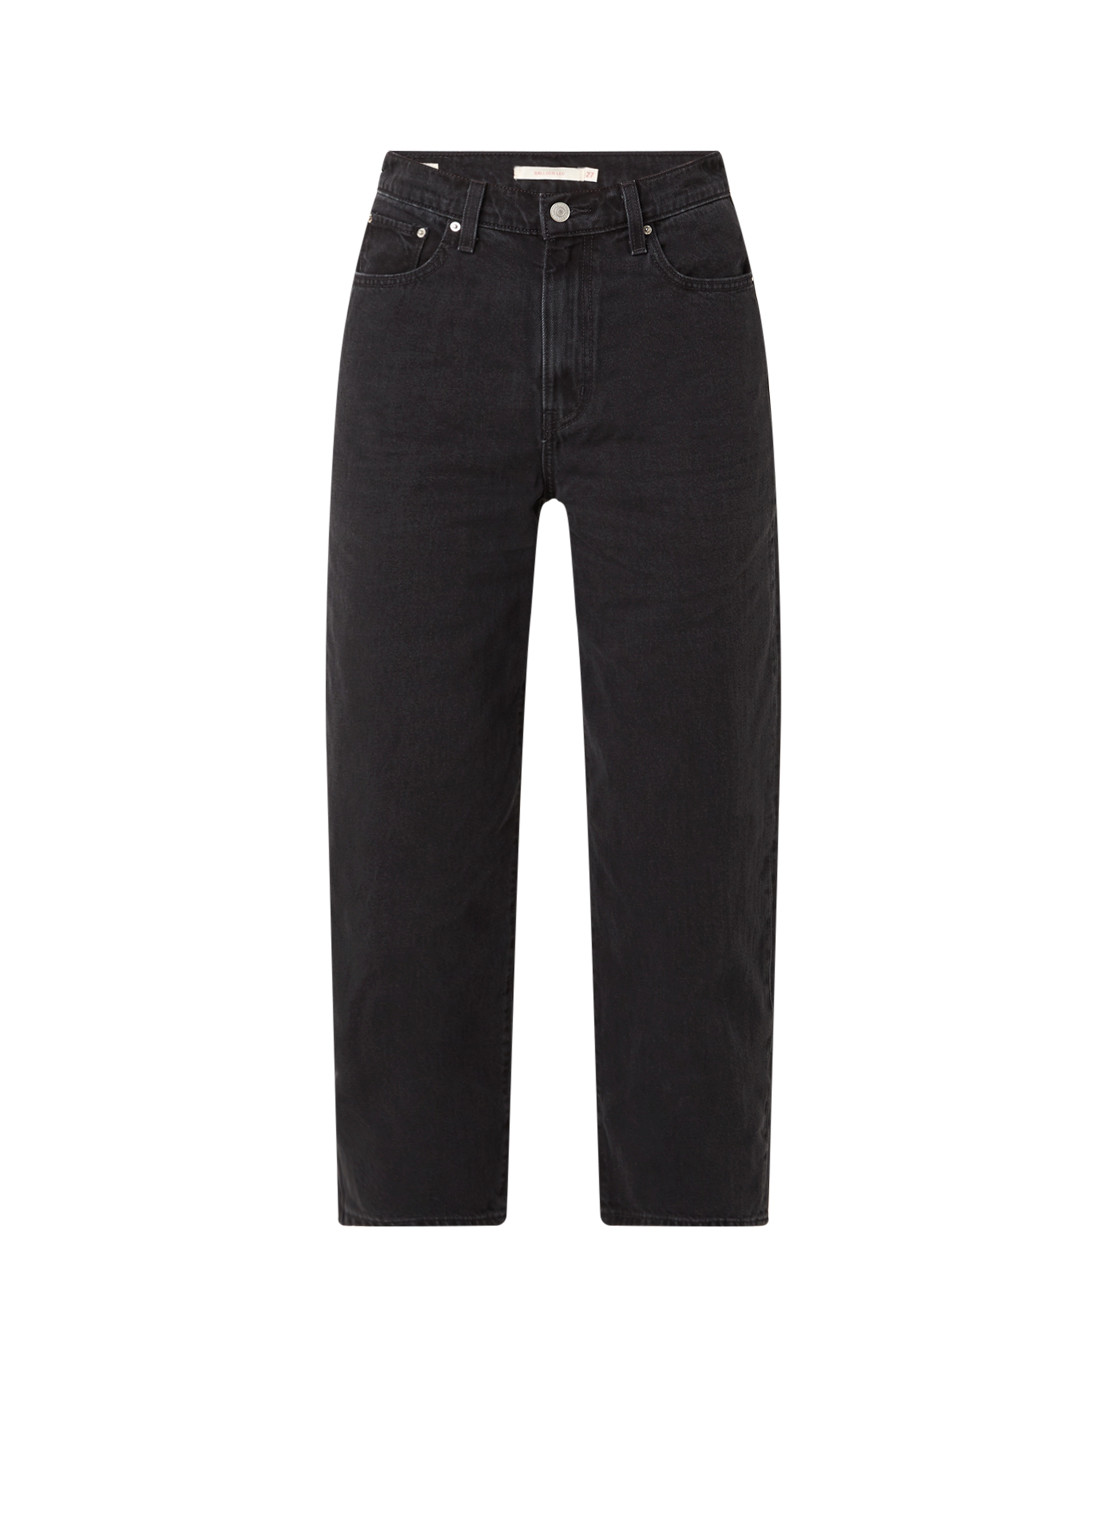 Levis Balloon Jeans high waist loose fit jeans